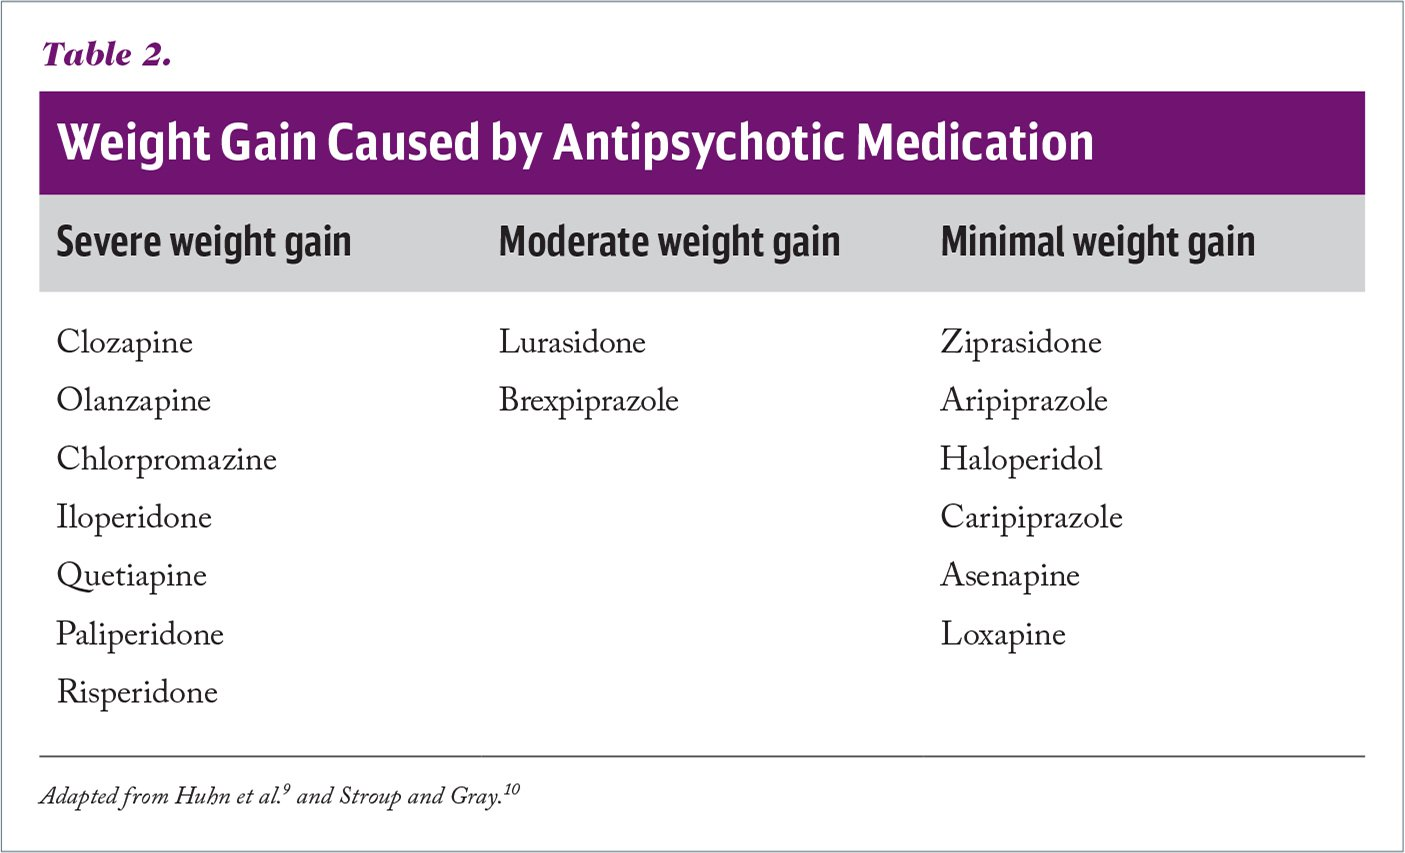 Weight Gain Caused by Antipsychotic Medication